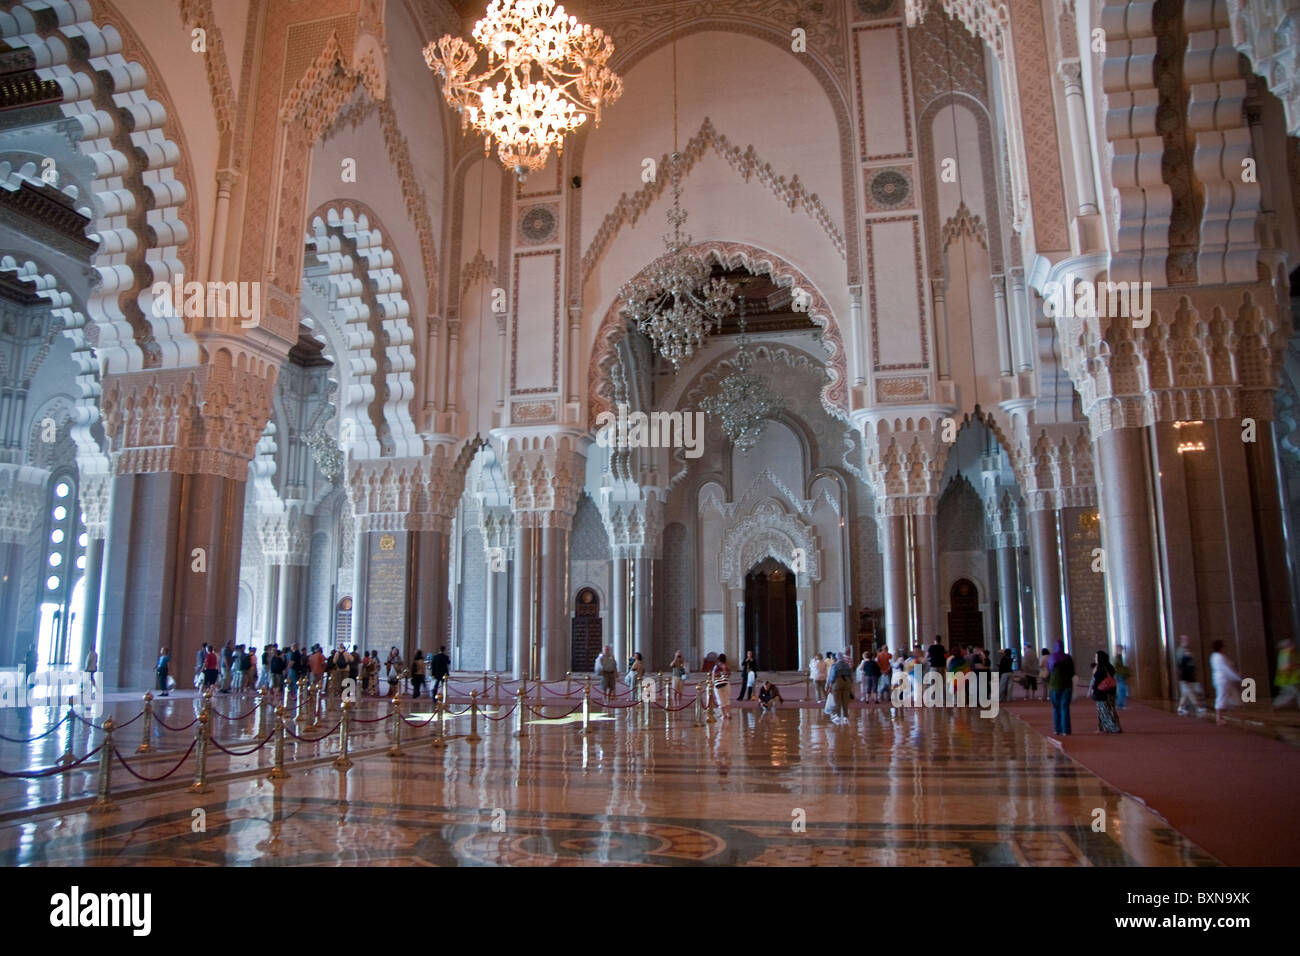 Hassan II Mosque's interior in Casablanca, Morocco - Stock Image